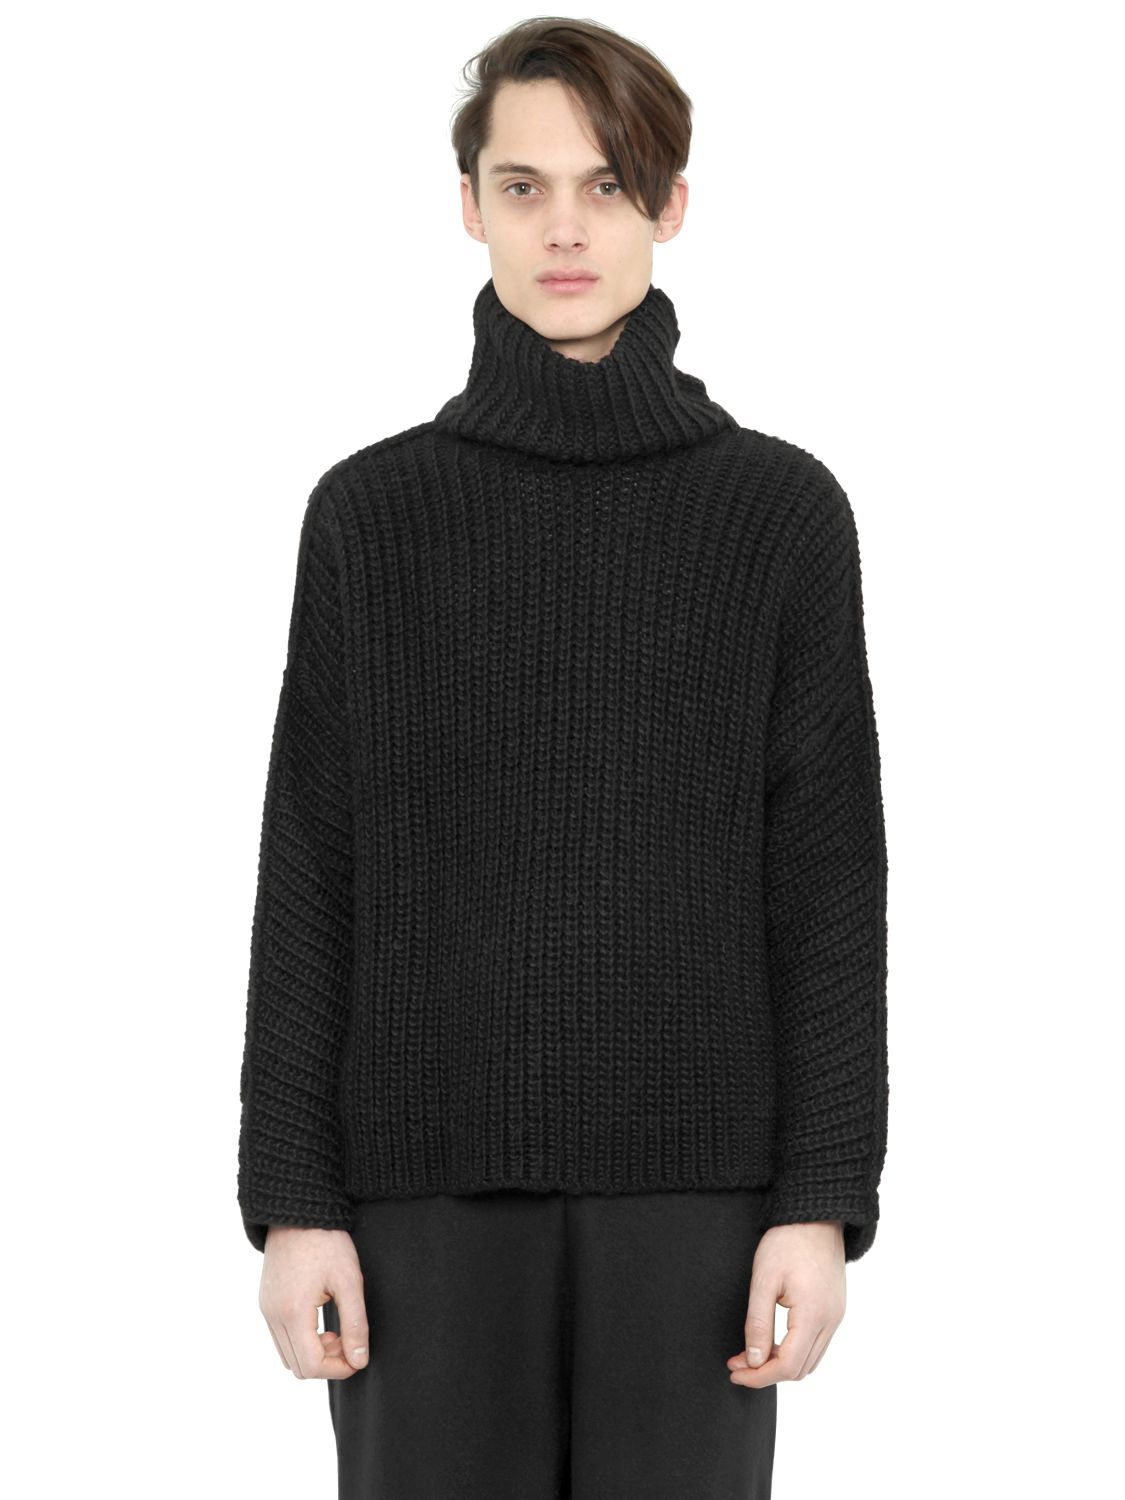 Blood brother Wool Blend Rib Knit Turtleneck Sweater in Black for ...